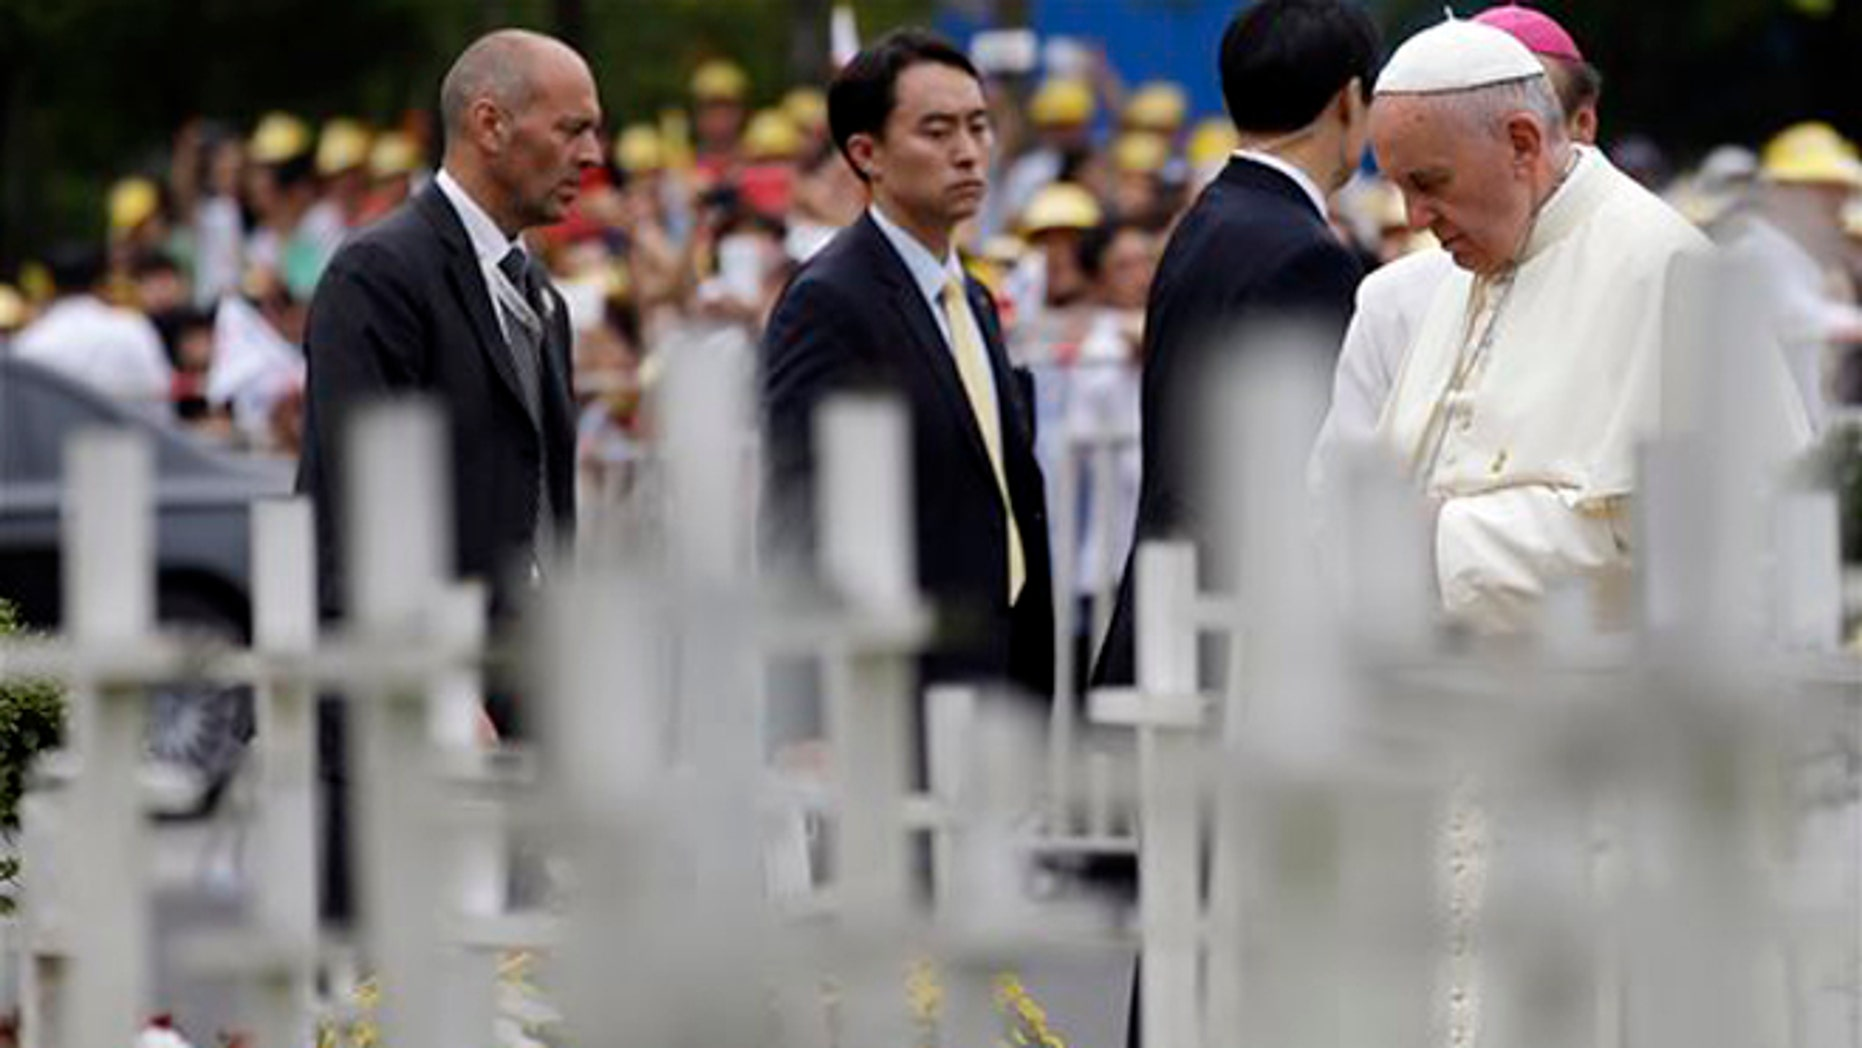 """Pope Francis prays in front of white wooden crosses of the unborn children garden during his visit to the """"House of Hope"""" center for disabled in Kkottongnae, South Korea, Saturday, Aug. 16, 2014. Francis bowed his head in prayer before the monument and spoke with an anti-abortion activist with no arms and no legs. (AP Photo/Gregorio Borgia)"""